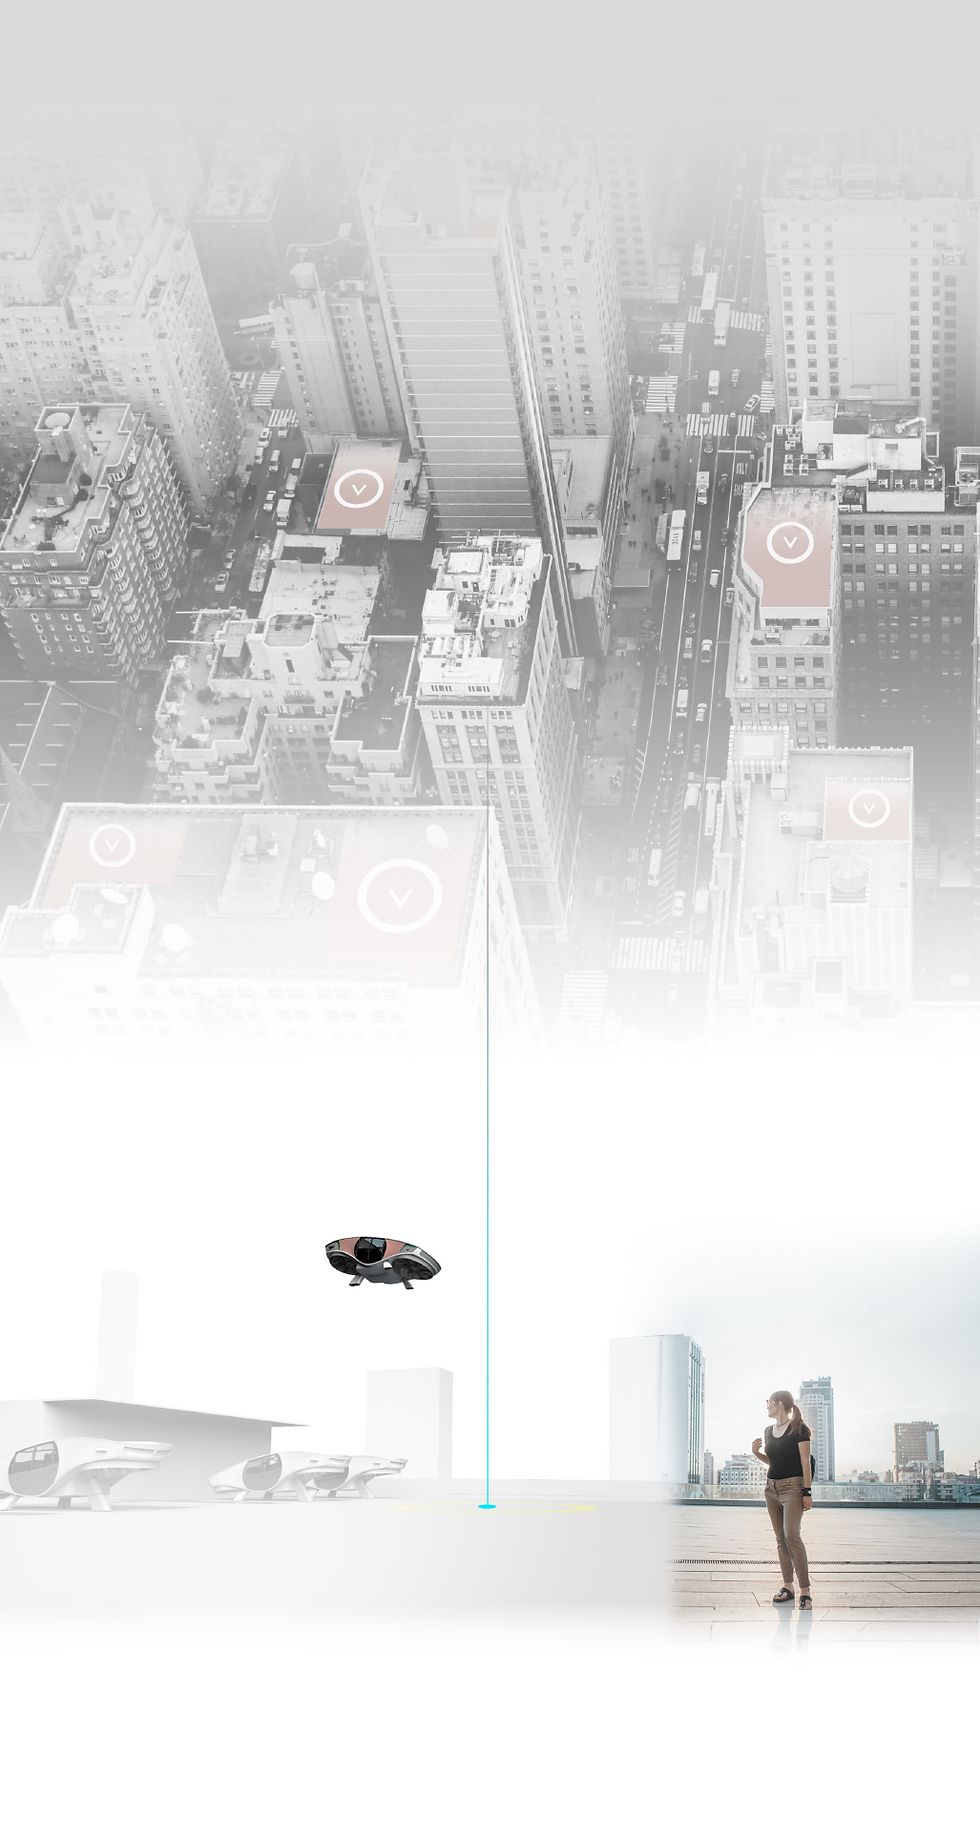 Flying vehicle connecting from point A to B on city rooftops